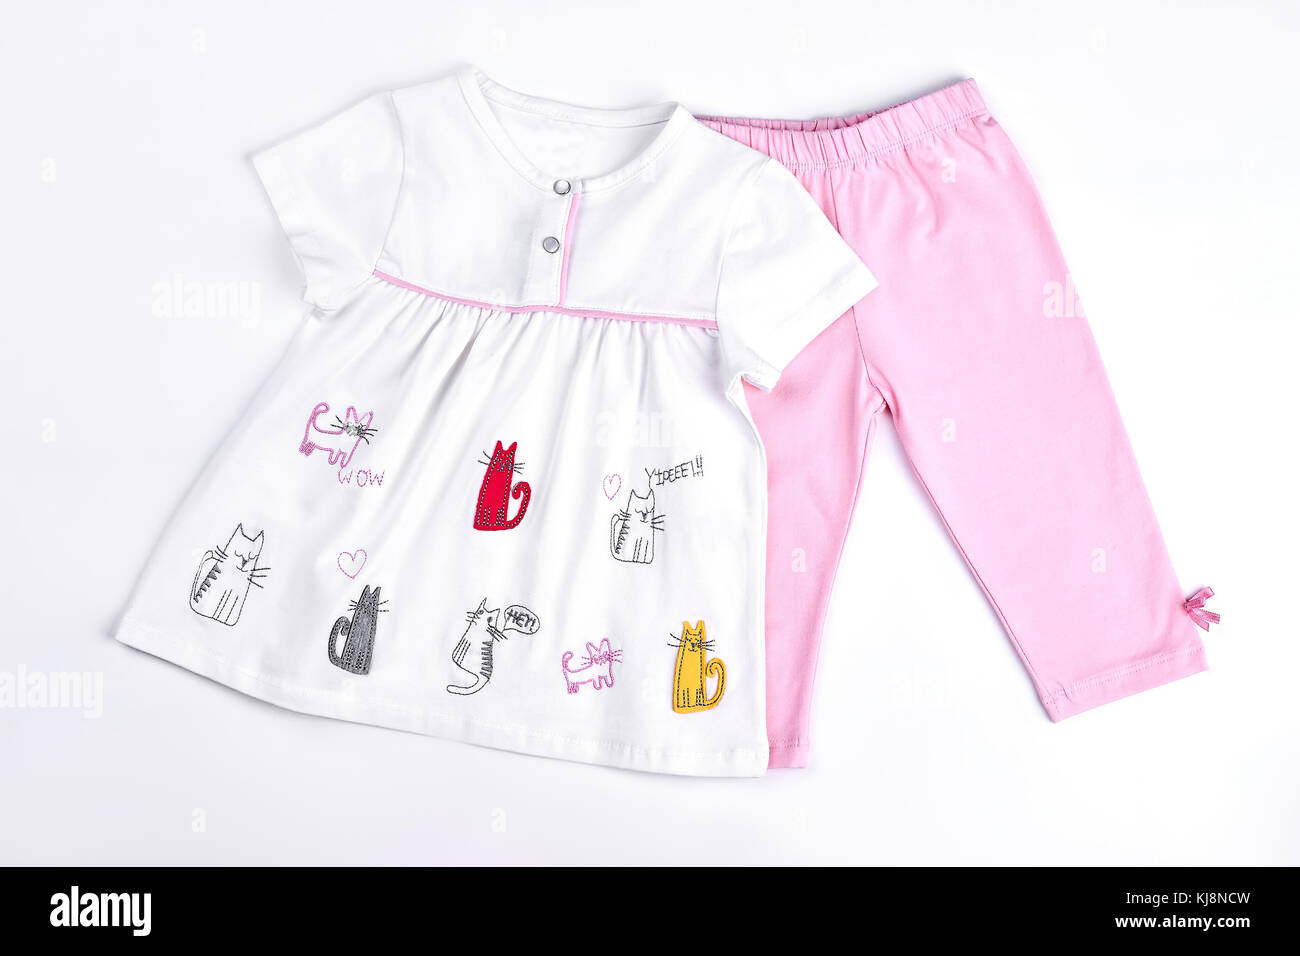 a39f05de4241 Newborn girl beautiful summer clothes. Infant girl set of white cartoon  dress and pink leggings. Baby-girl cute summer garment on sale.